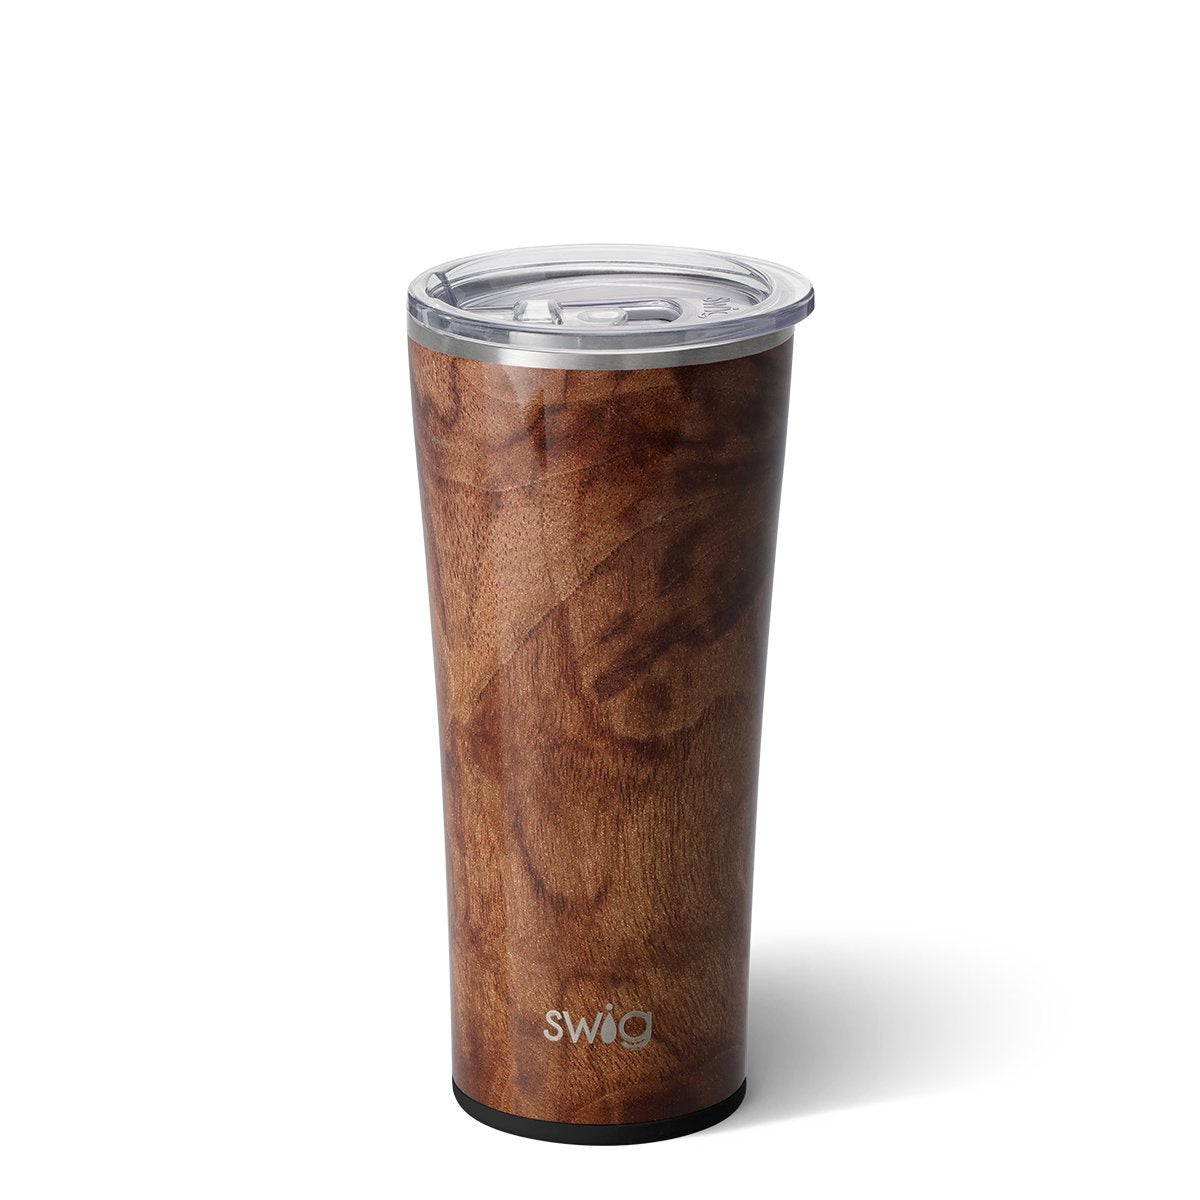 SWIG - 22 OZ TUMBLER IN BLACK WALNUT